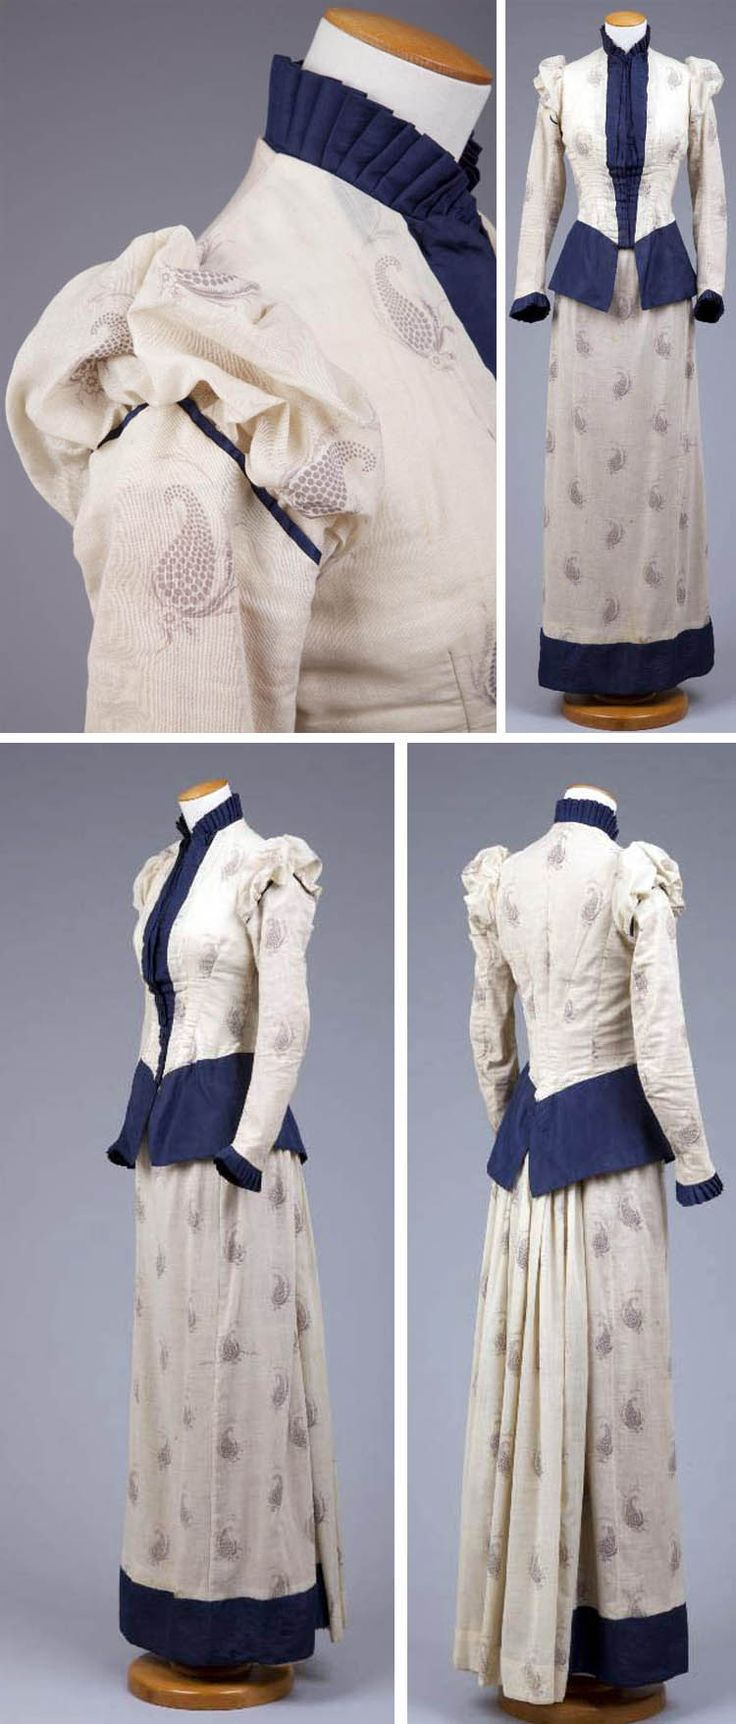 """Day or walking dress ca. 1890-83. Bodice & skirt made of natural cotton and wool printed with a dark blue, widely spaced, large paisley print. Tight-fitting boned bodice, narrow sleeves, and high collar. Sleeves are dropped and bodice front has slight """"V"""" lower edge. Fairly slim skirt has fullness in back for small bustle. Hand-stitched except for some machine-stitched alterations. Cotton lining. Goldstein Museum of Design, Univ. of Minnesota"""